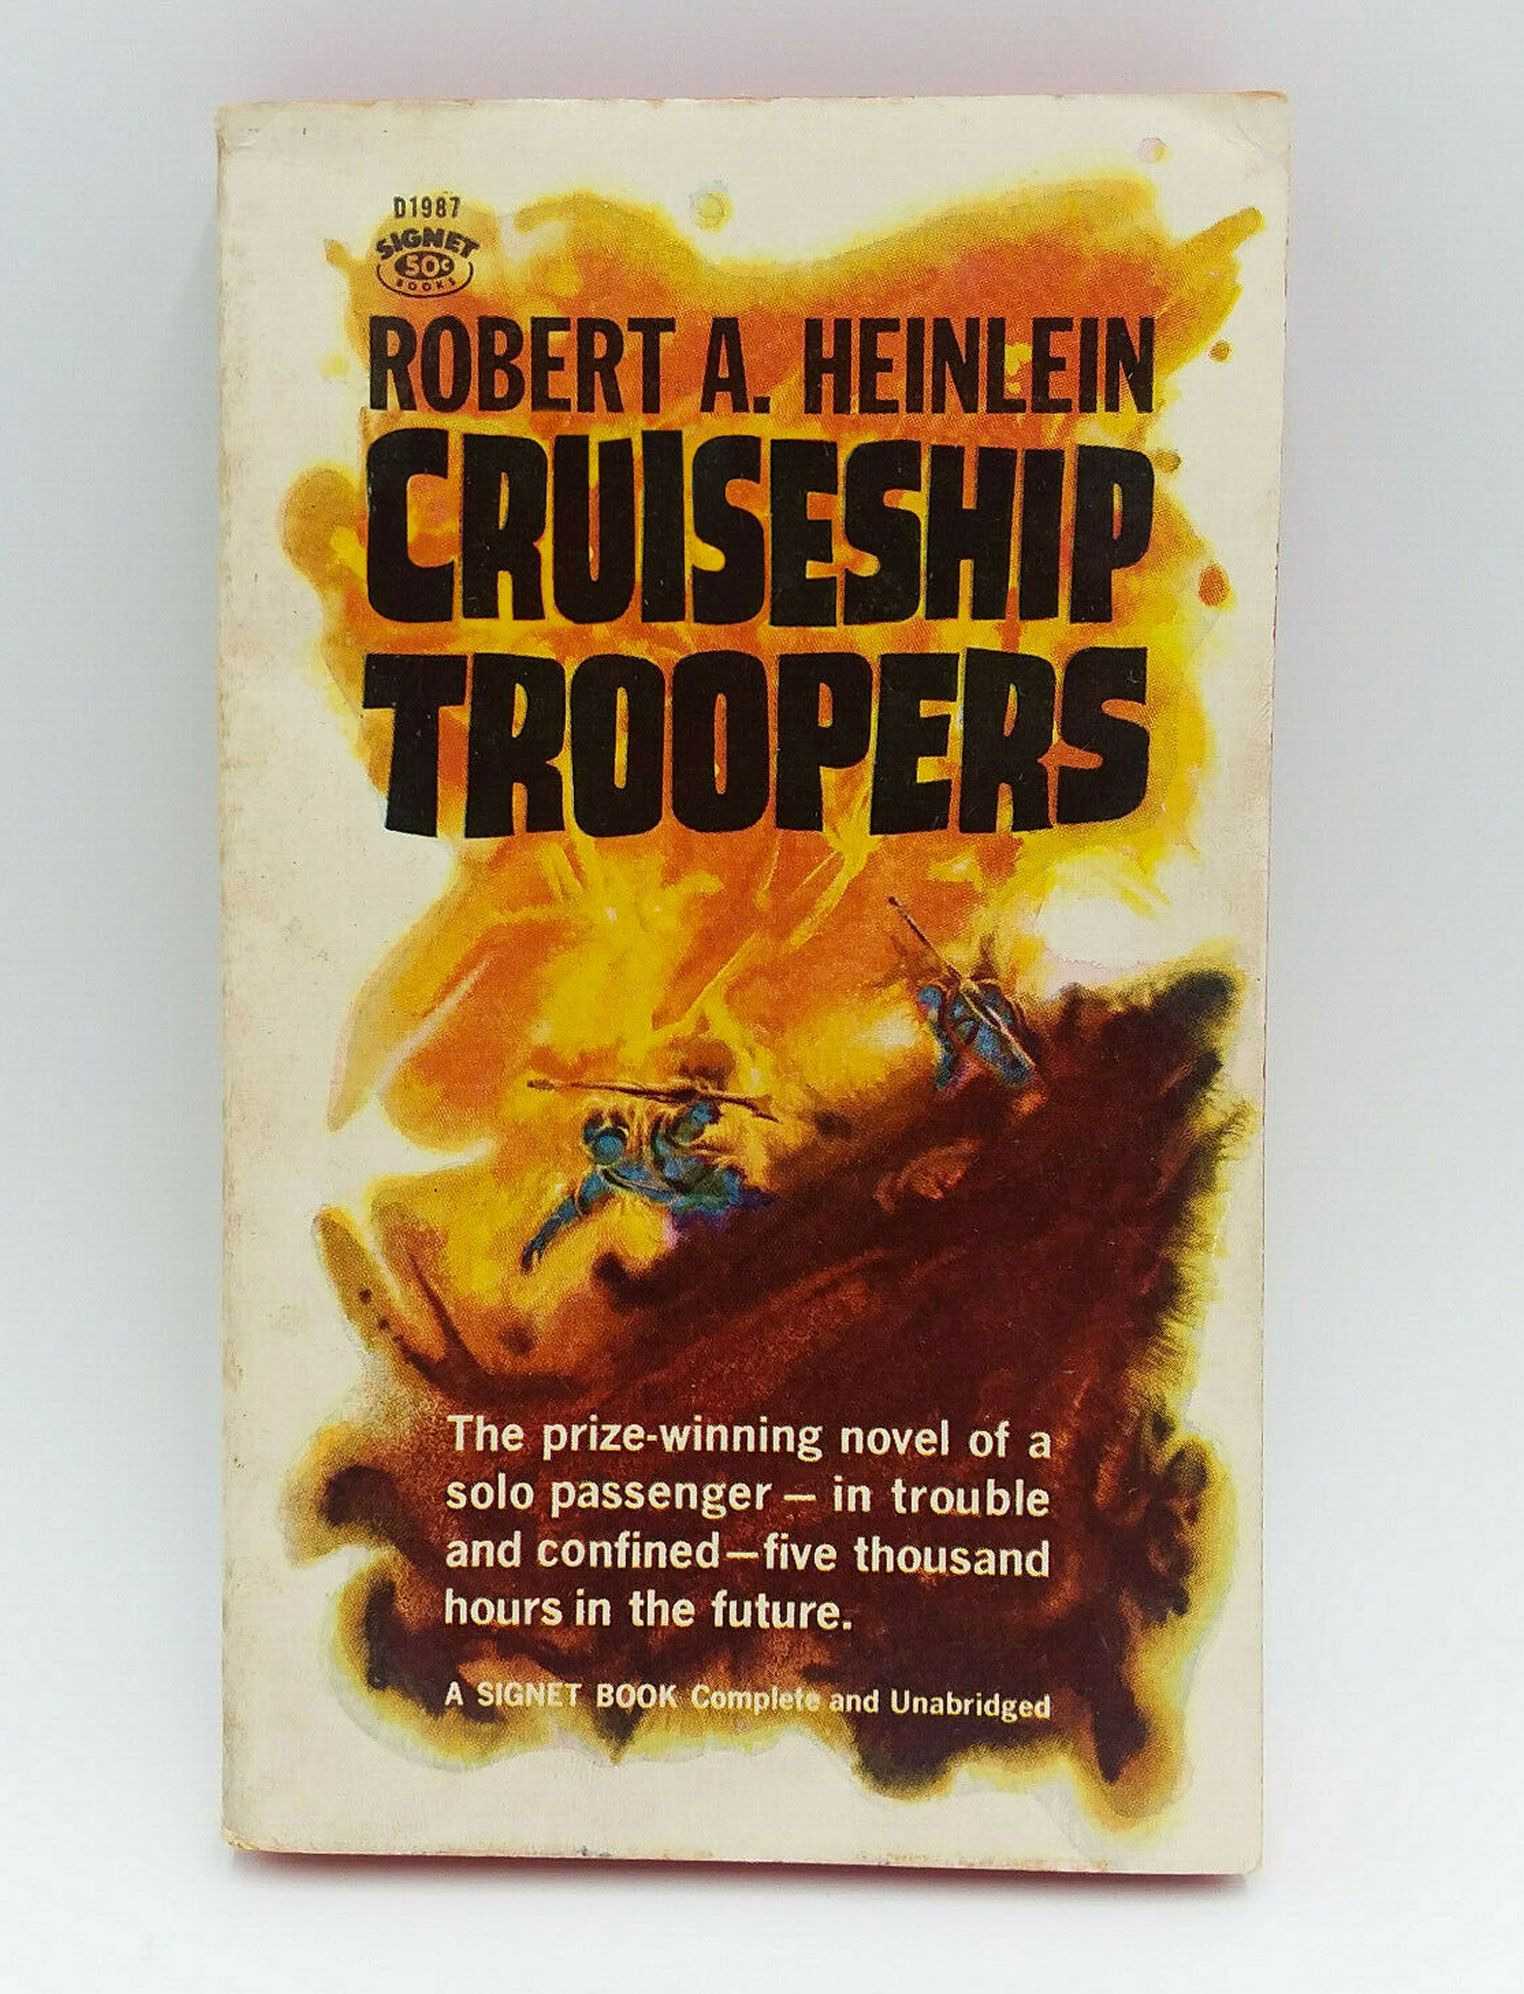 Cruiseship Troopers (Starship Troopers, by Robert A. Heinlein)